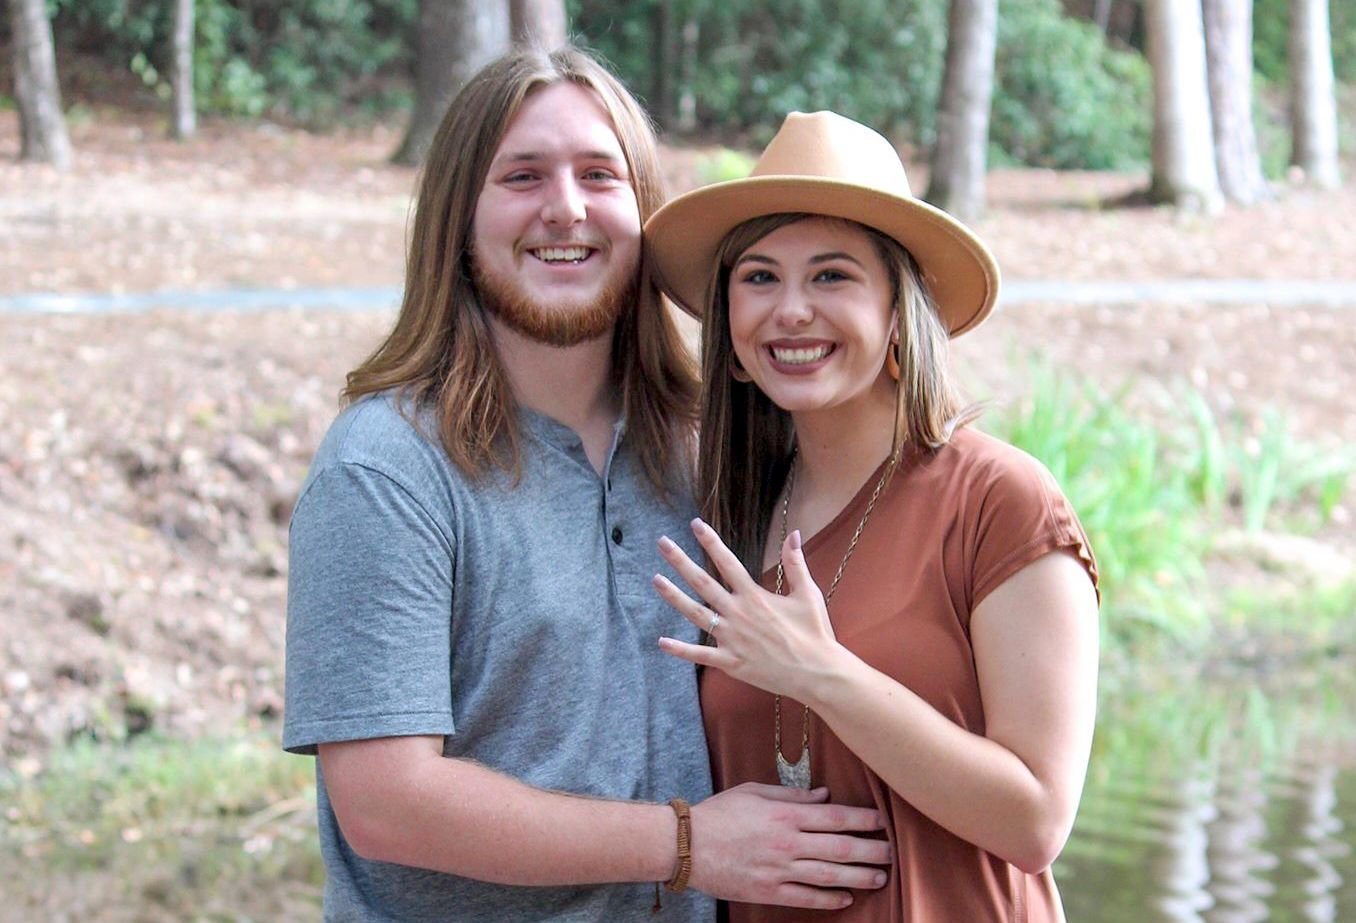 Many people helped make Valentine's Day special this year for Dakotah Stanton and Riley Brown, who are engaged to be married later this year.